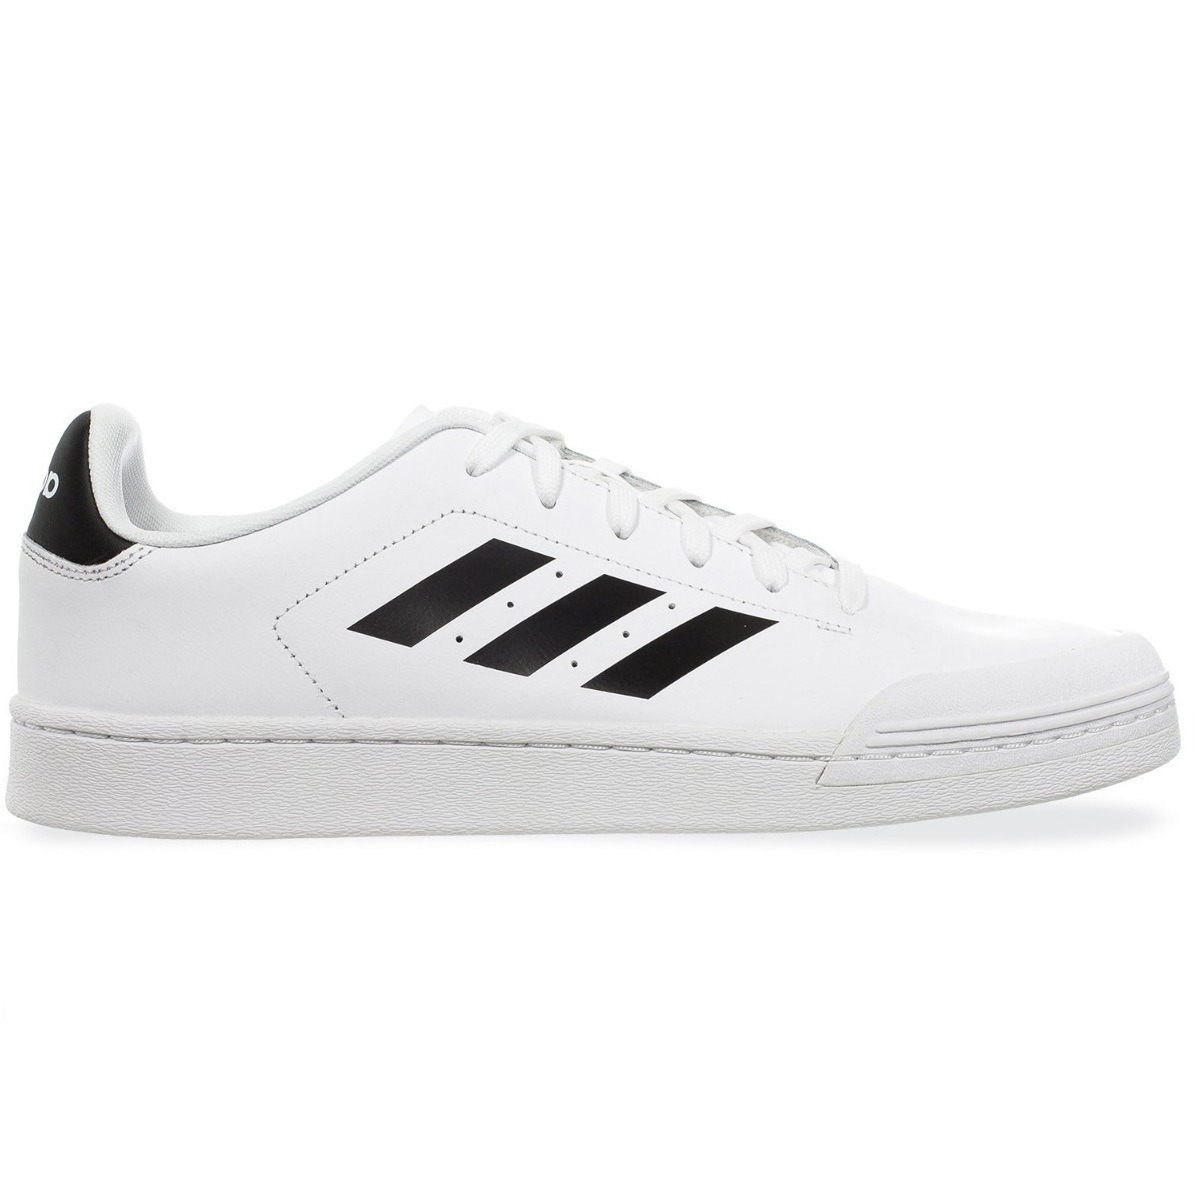 6d1d82db championes adidas hombre court 70s b79774 - global sports. Cargando zoom.